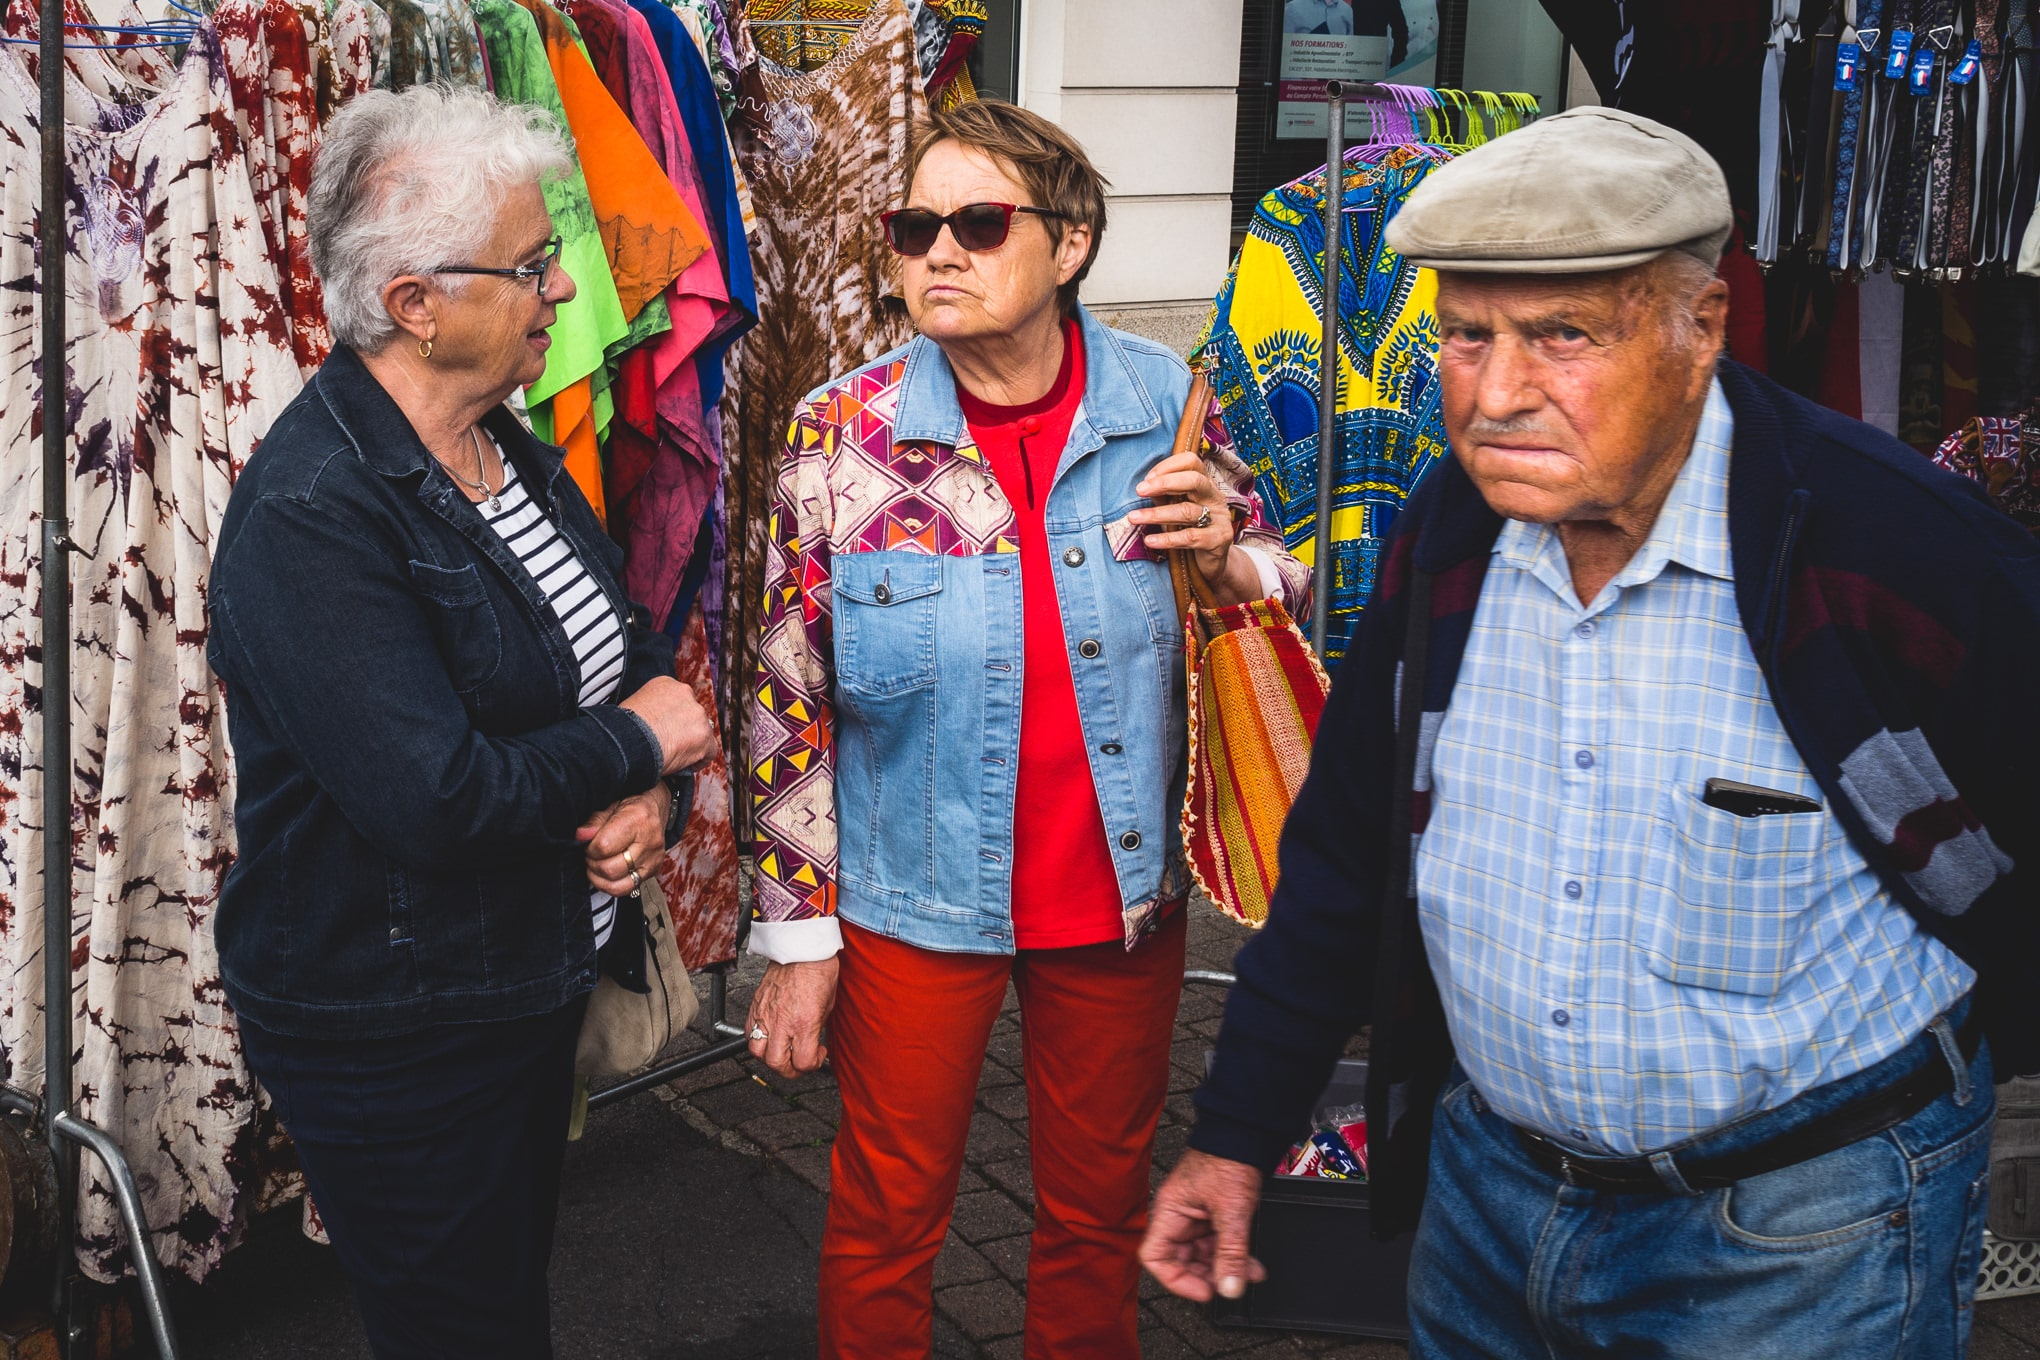 A man and two ladies at chateaubriant market in France photographed by documentary photographer Simon Hawkins